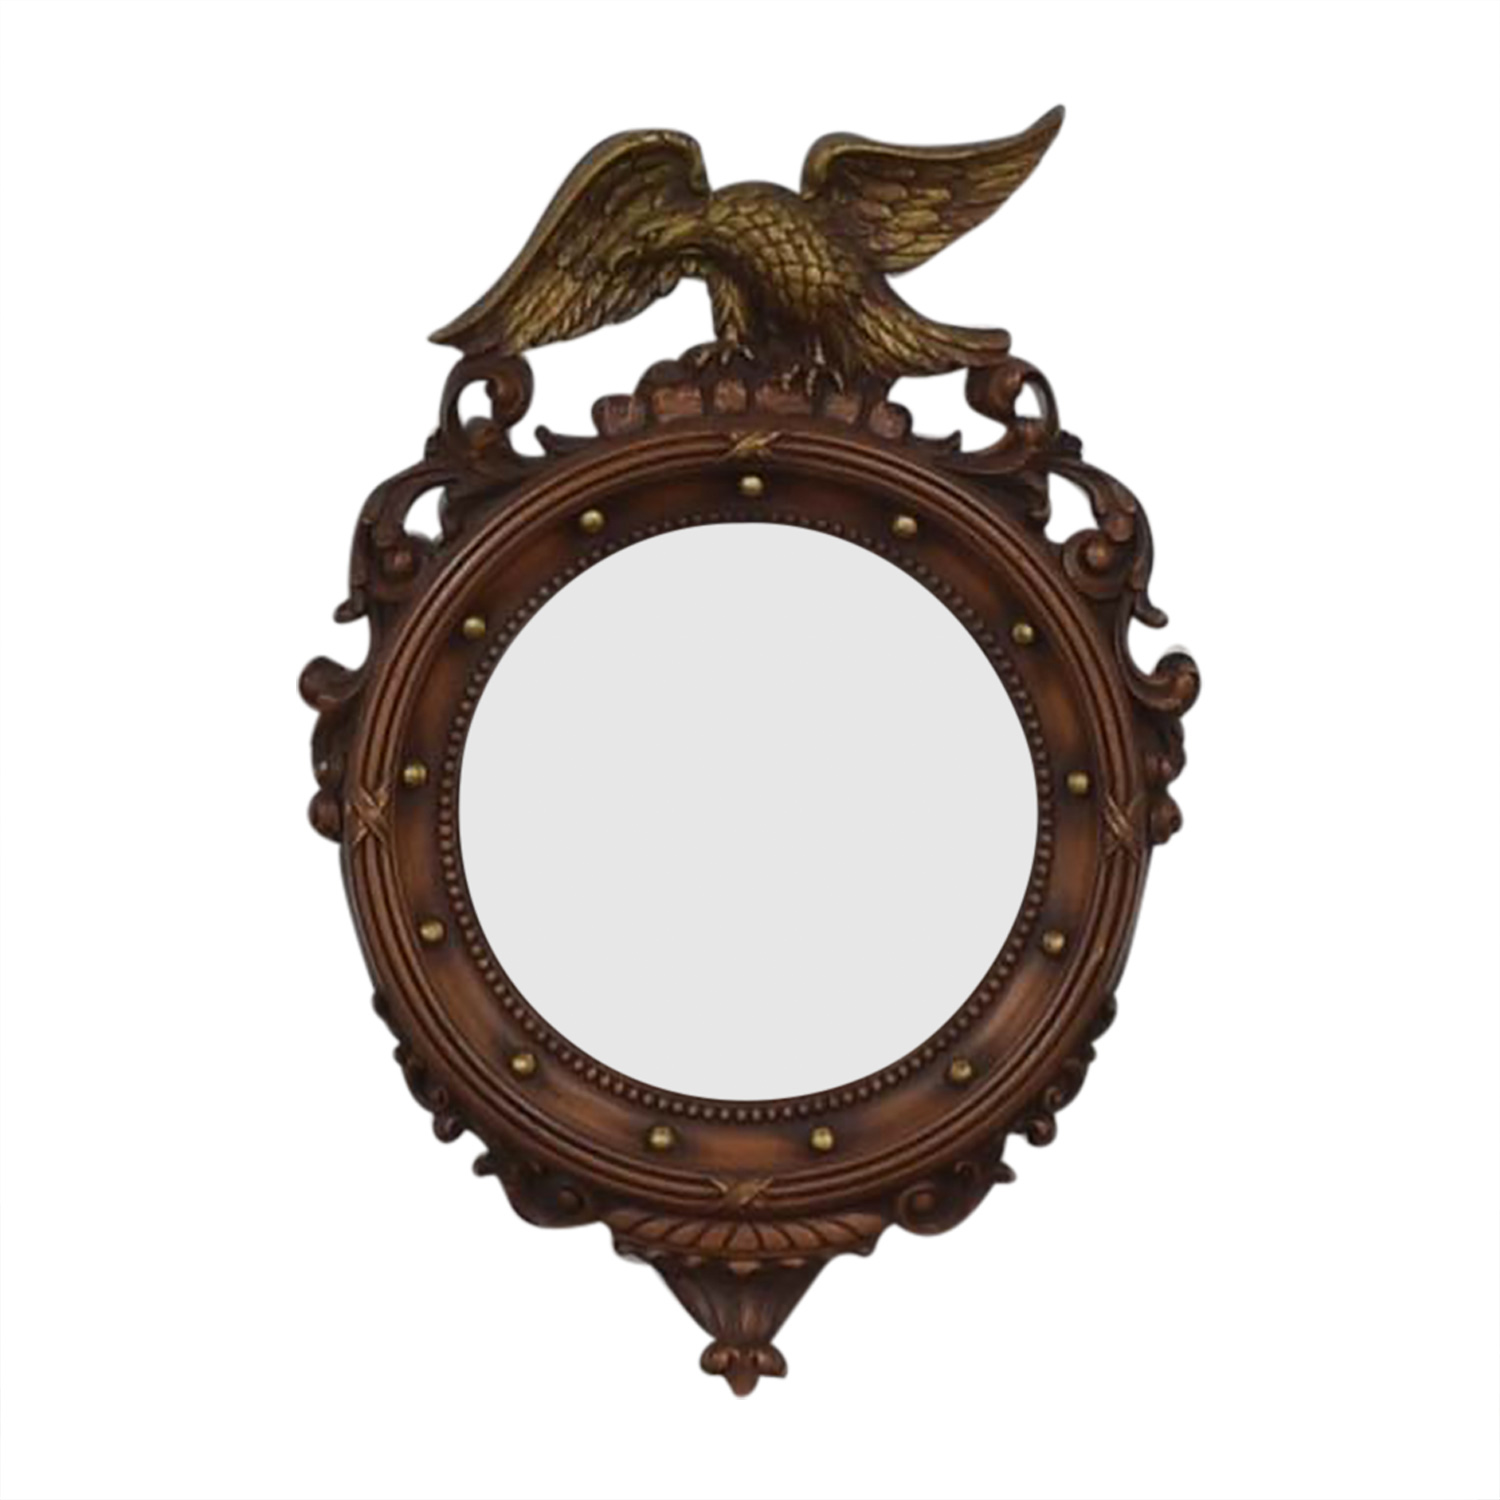 Syracuse Ornamental Company Syracuse Ornamental Company Wall Mirror price